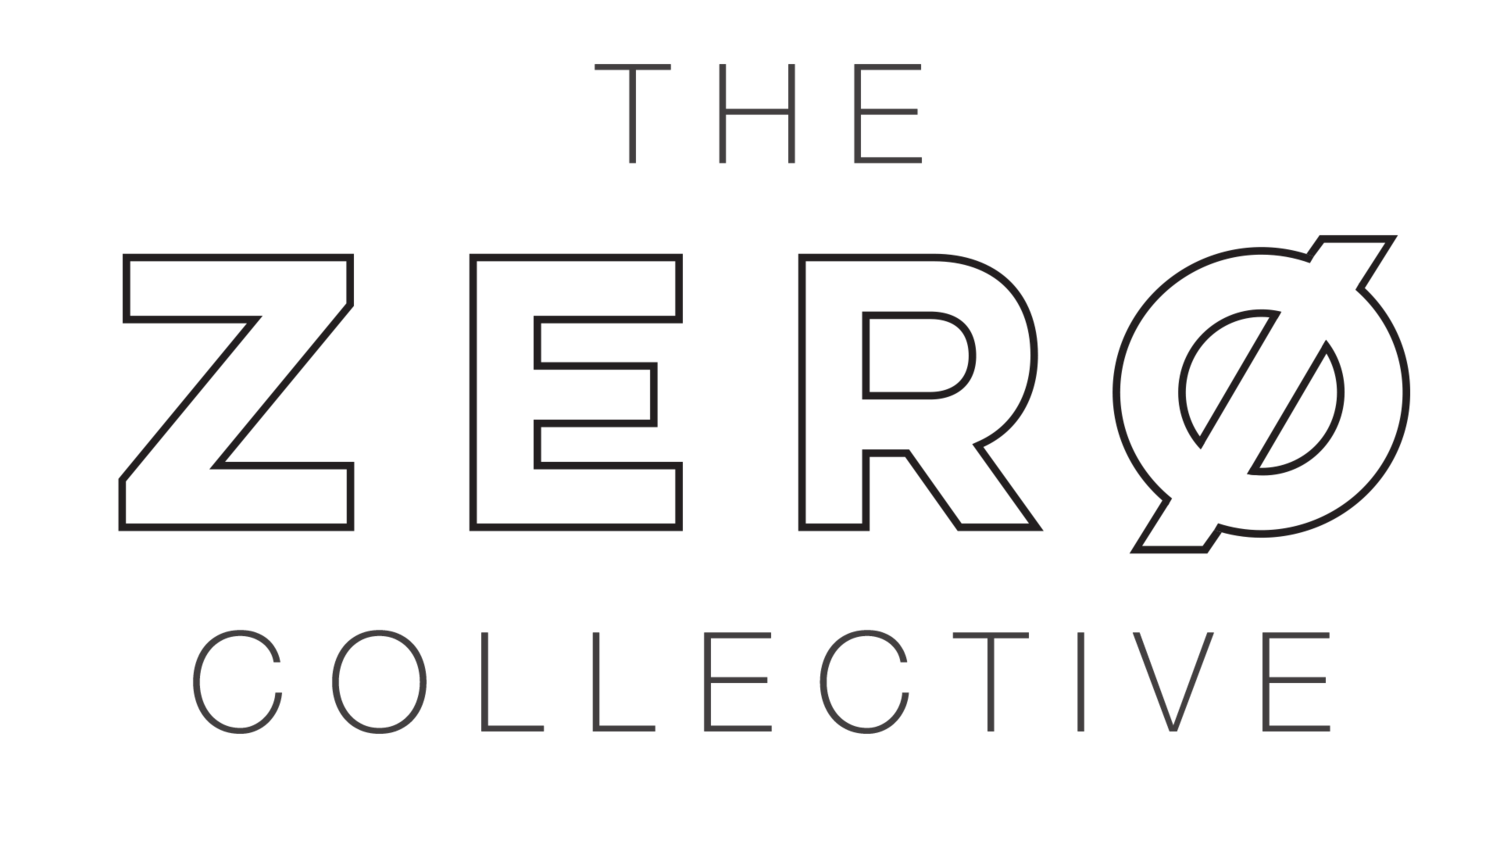 The Zero Collective